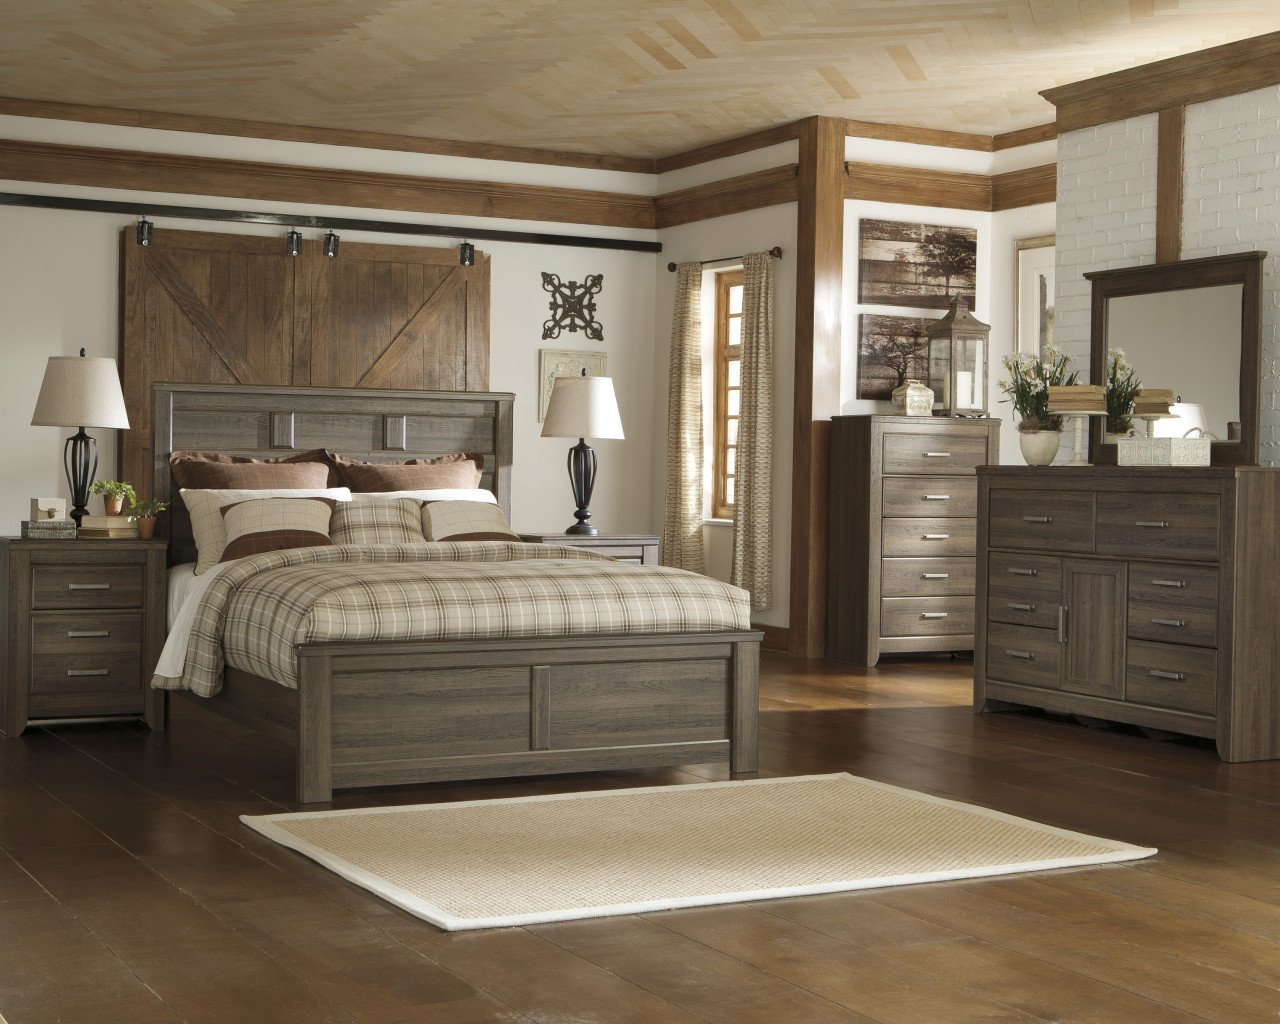 Ashley Furniture Full Size Bedroom Set Unique ashley Furniture Kids Bedroom Sets ashley Bedroom Set with